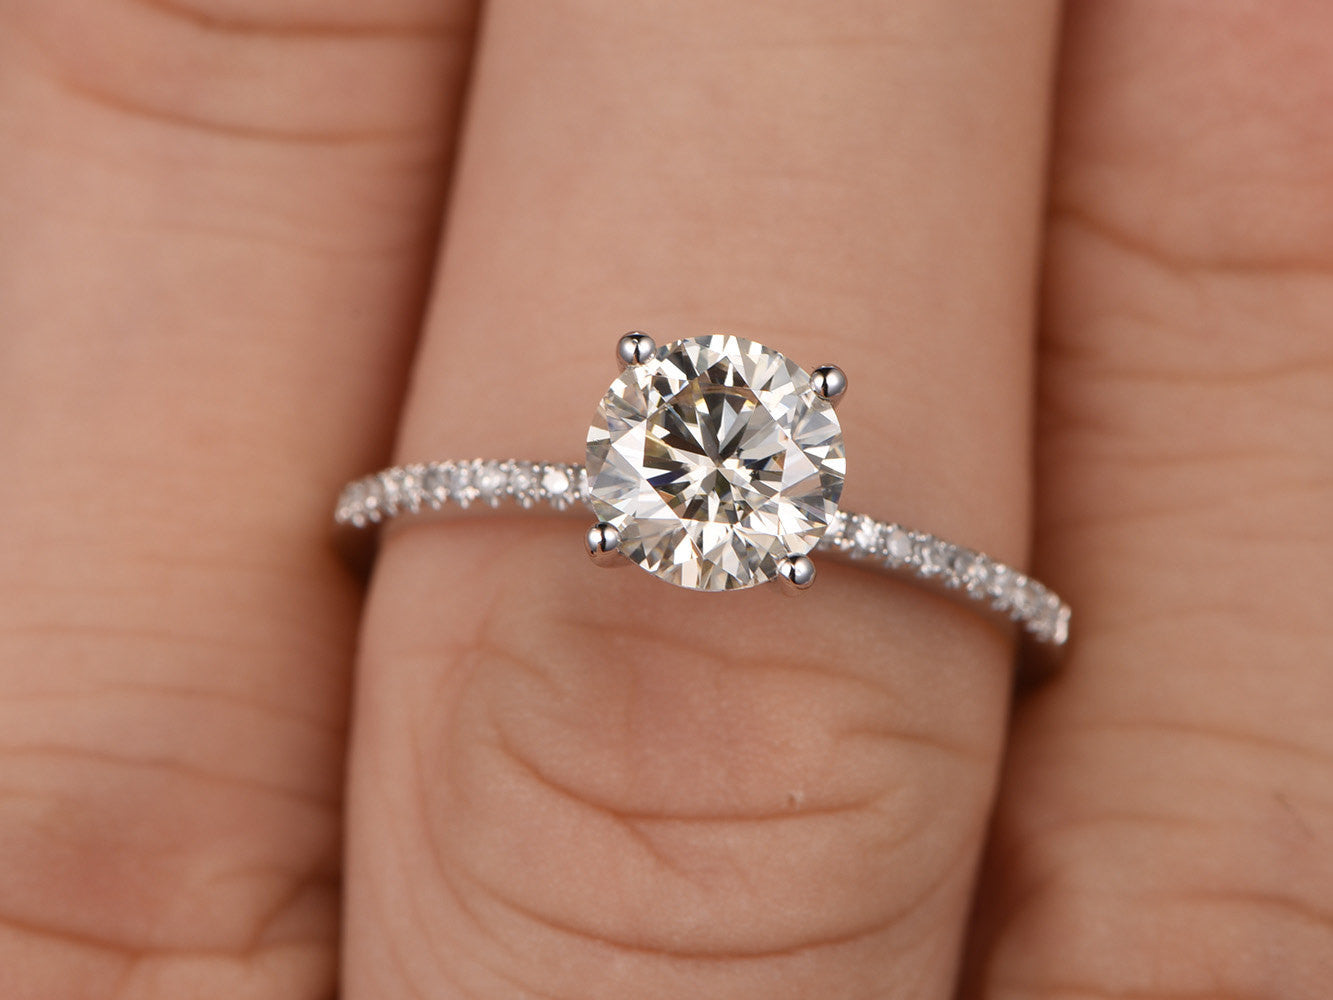 1.3ct brilliant Moissanite Engagement ring White gold,Diamond wedding band,14k,7mm Round Cut,Moissanite jewelry